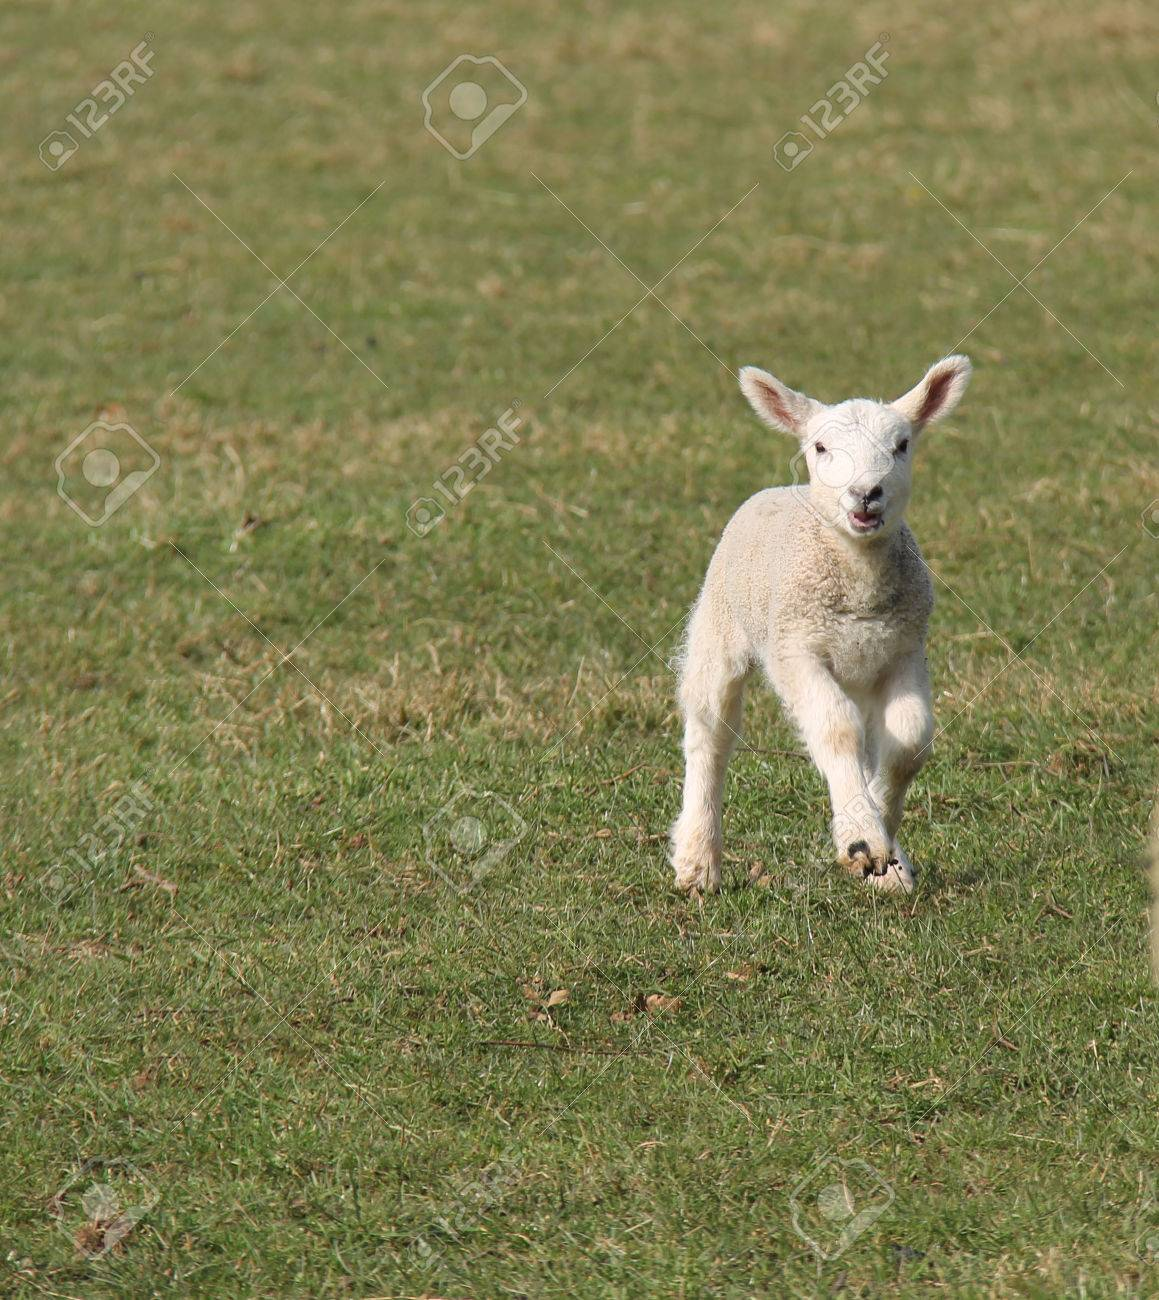 The Fresh Face Of A Happy Skipping Baby Lamb Stock Photo, Picture ... for Happy Baby Lamb  54lyp